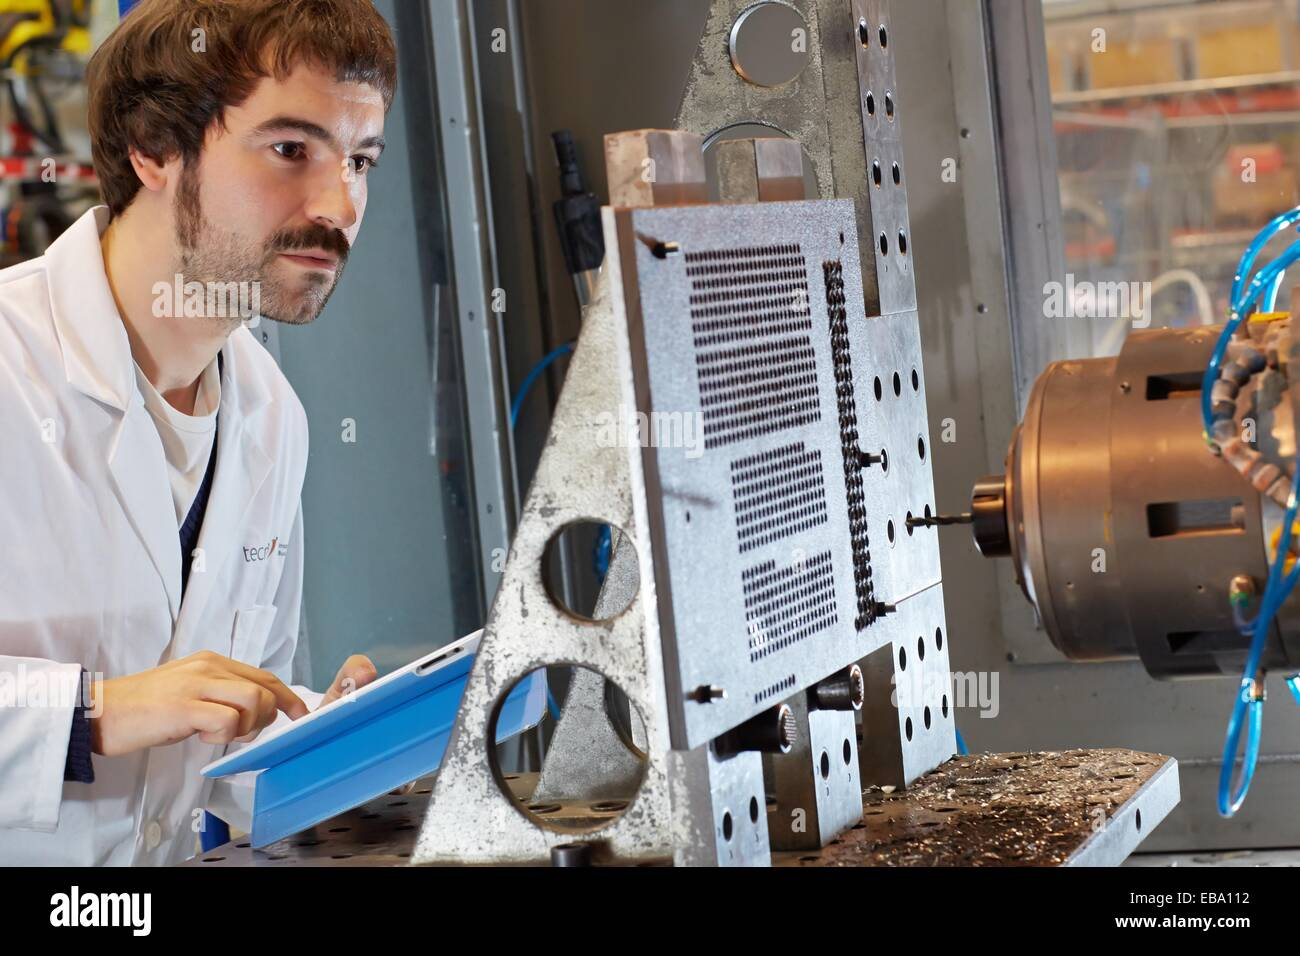 adult aeronautic Air transport aircraft analysis Basque Country center color image component computer control digital - Stock Image